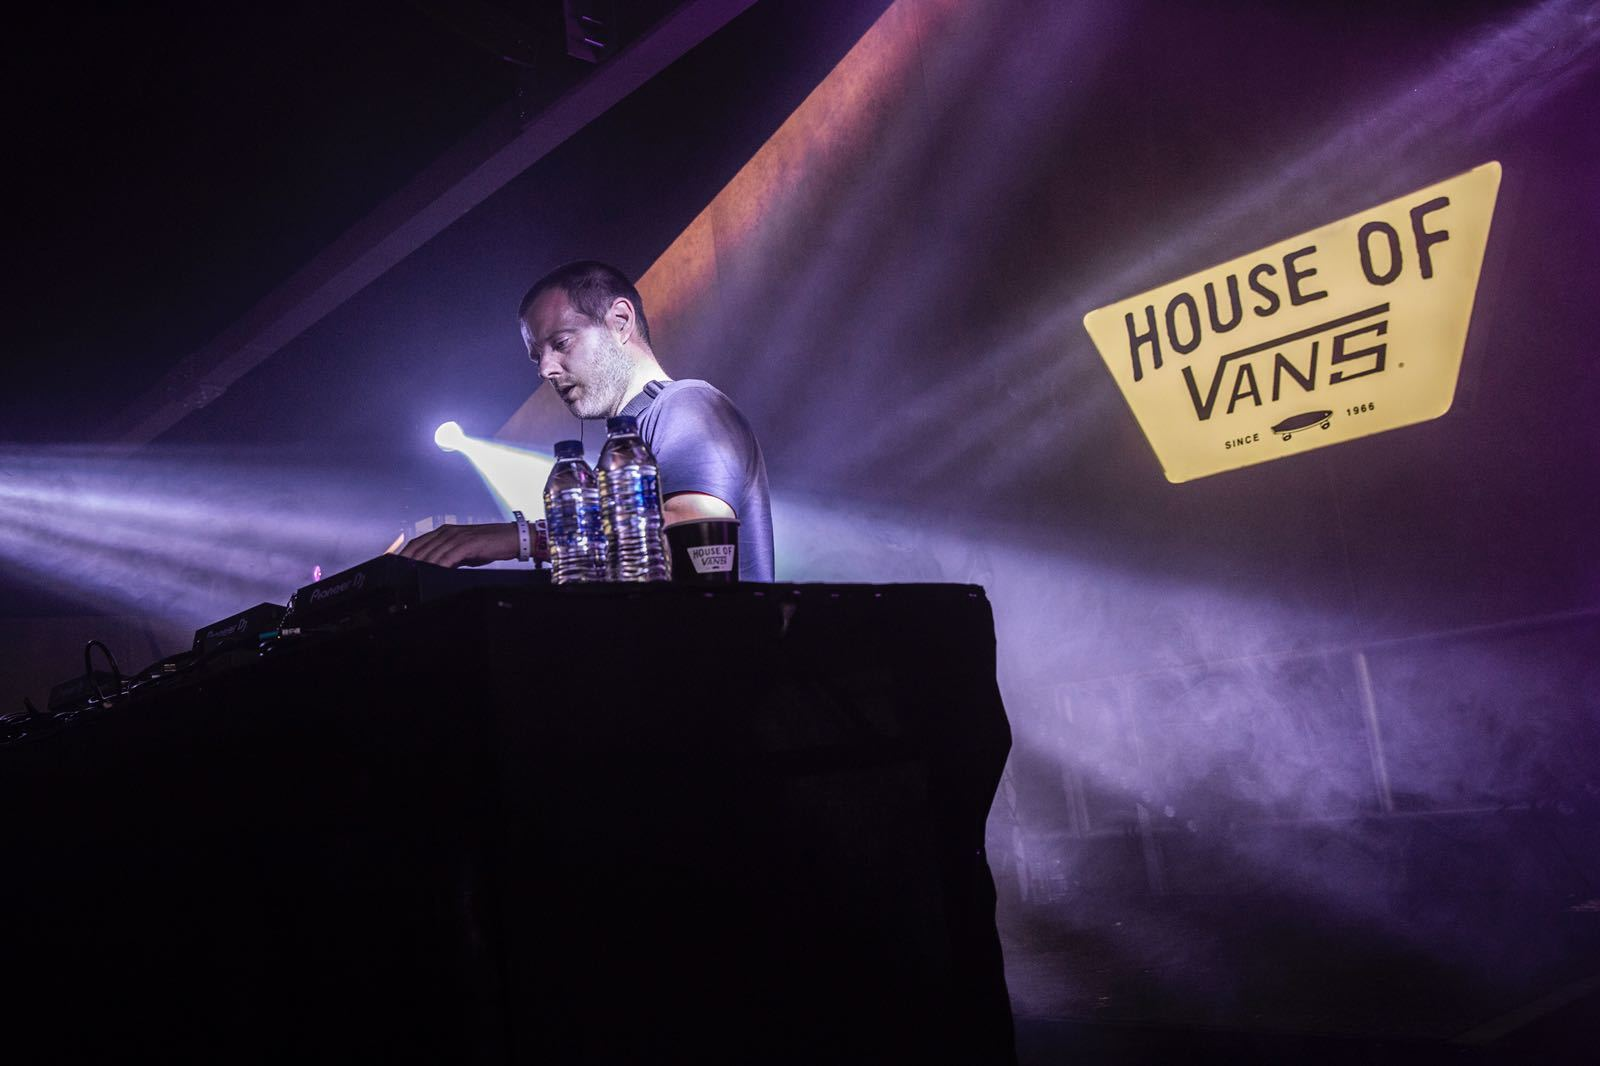 Mike Skinner gives Bestival a final night surprise on the DIY stage at the House Of Vans